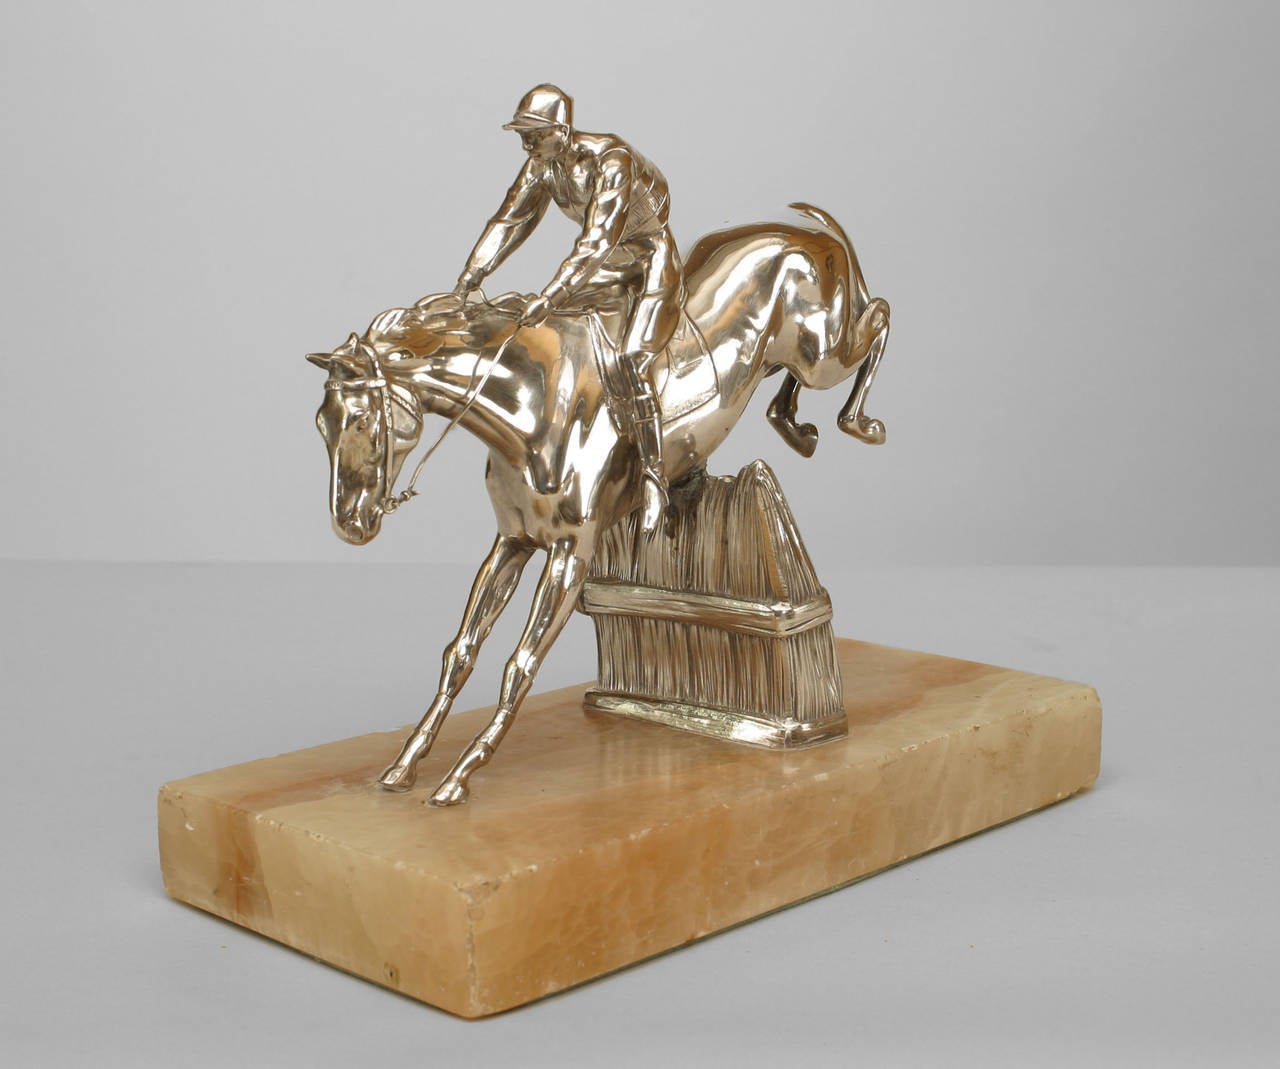 Early 20th Century 19th c. English Silver-Plated Bronze Horse and Jockey Sculpture For Sale